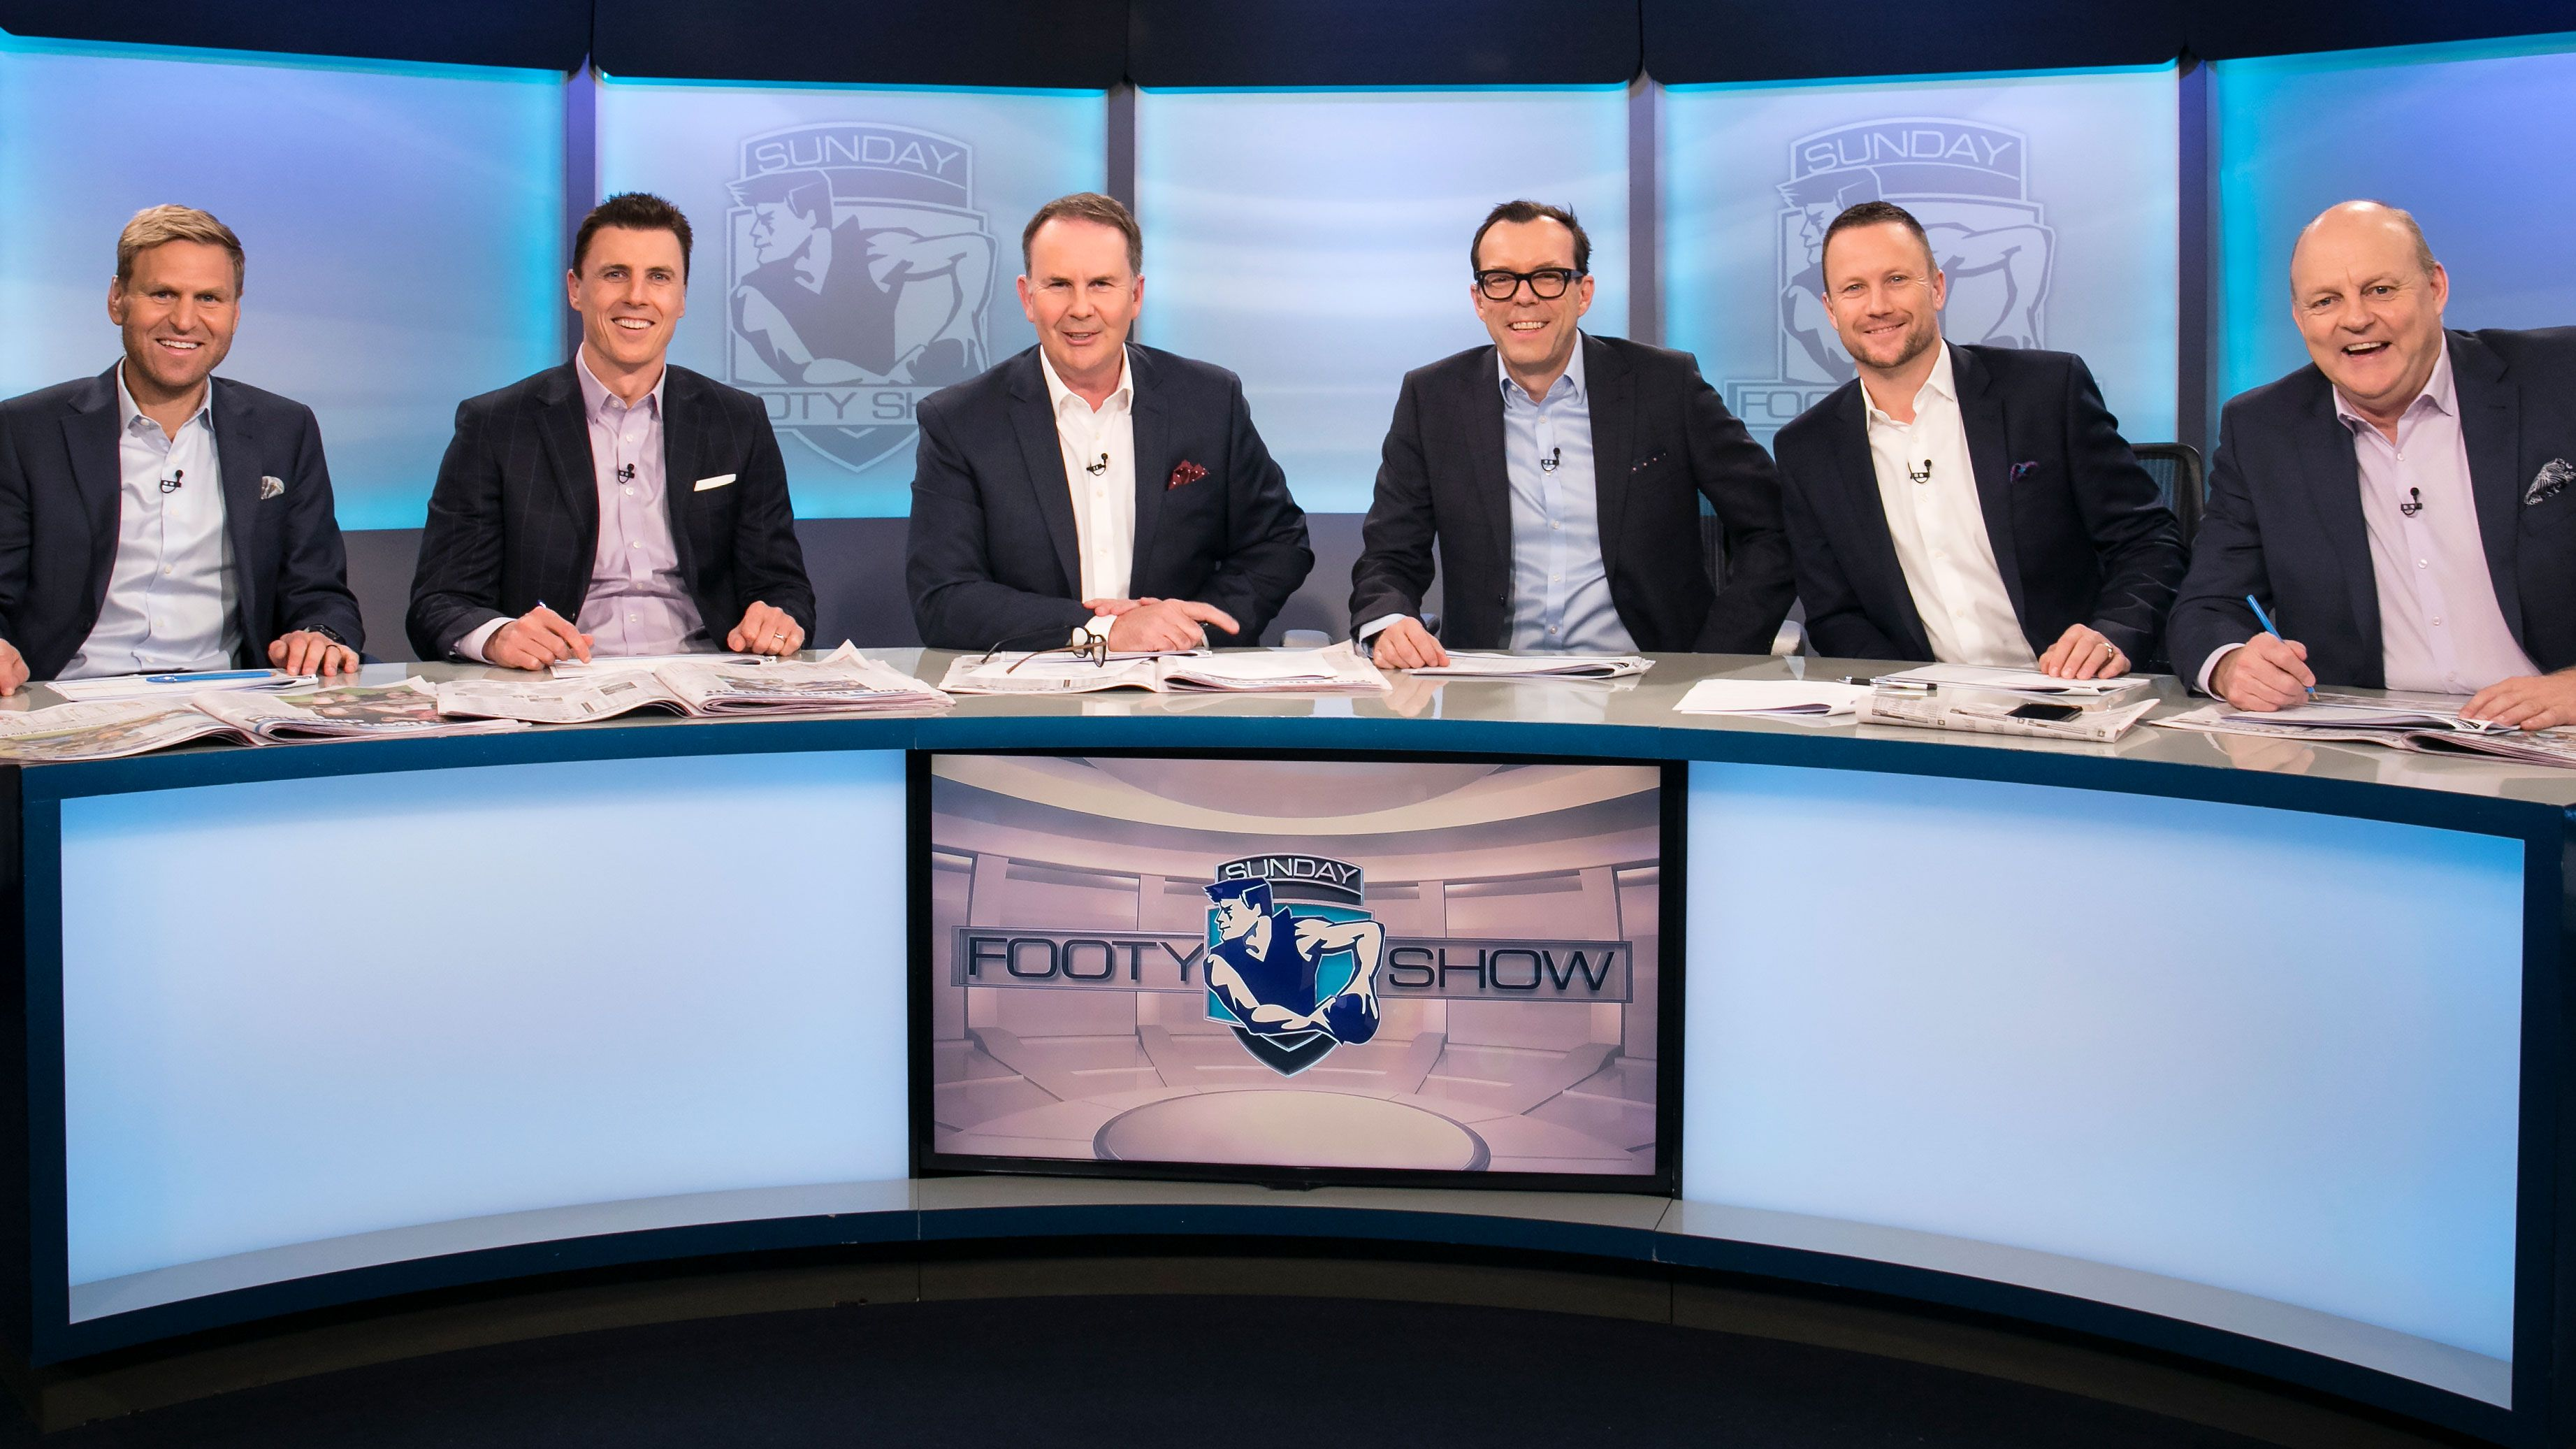 The Sunday Footy Show panel.